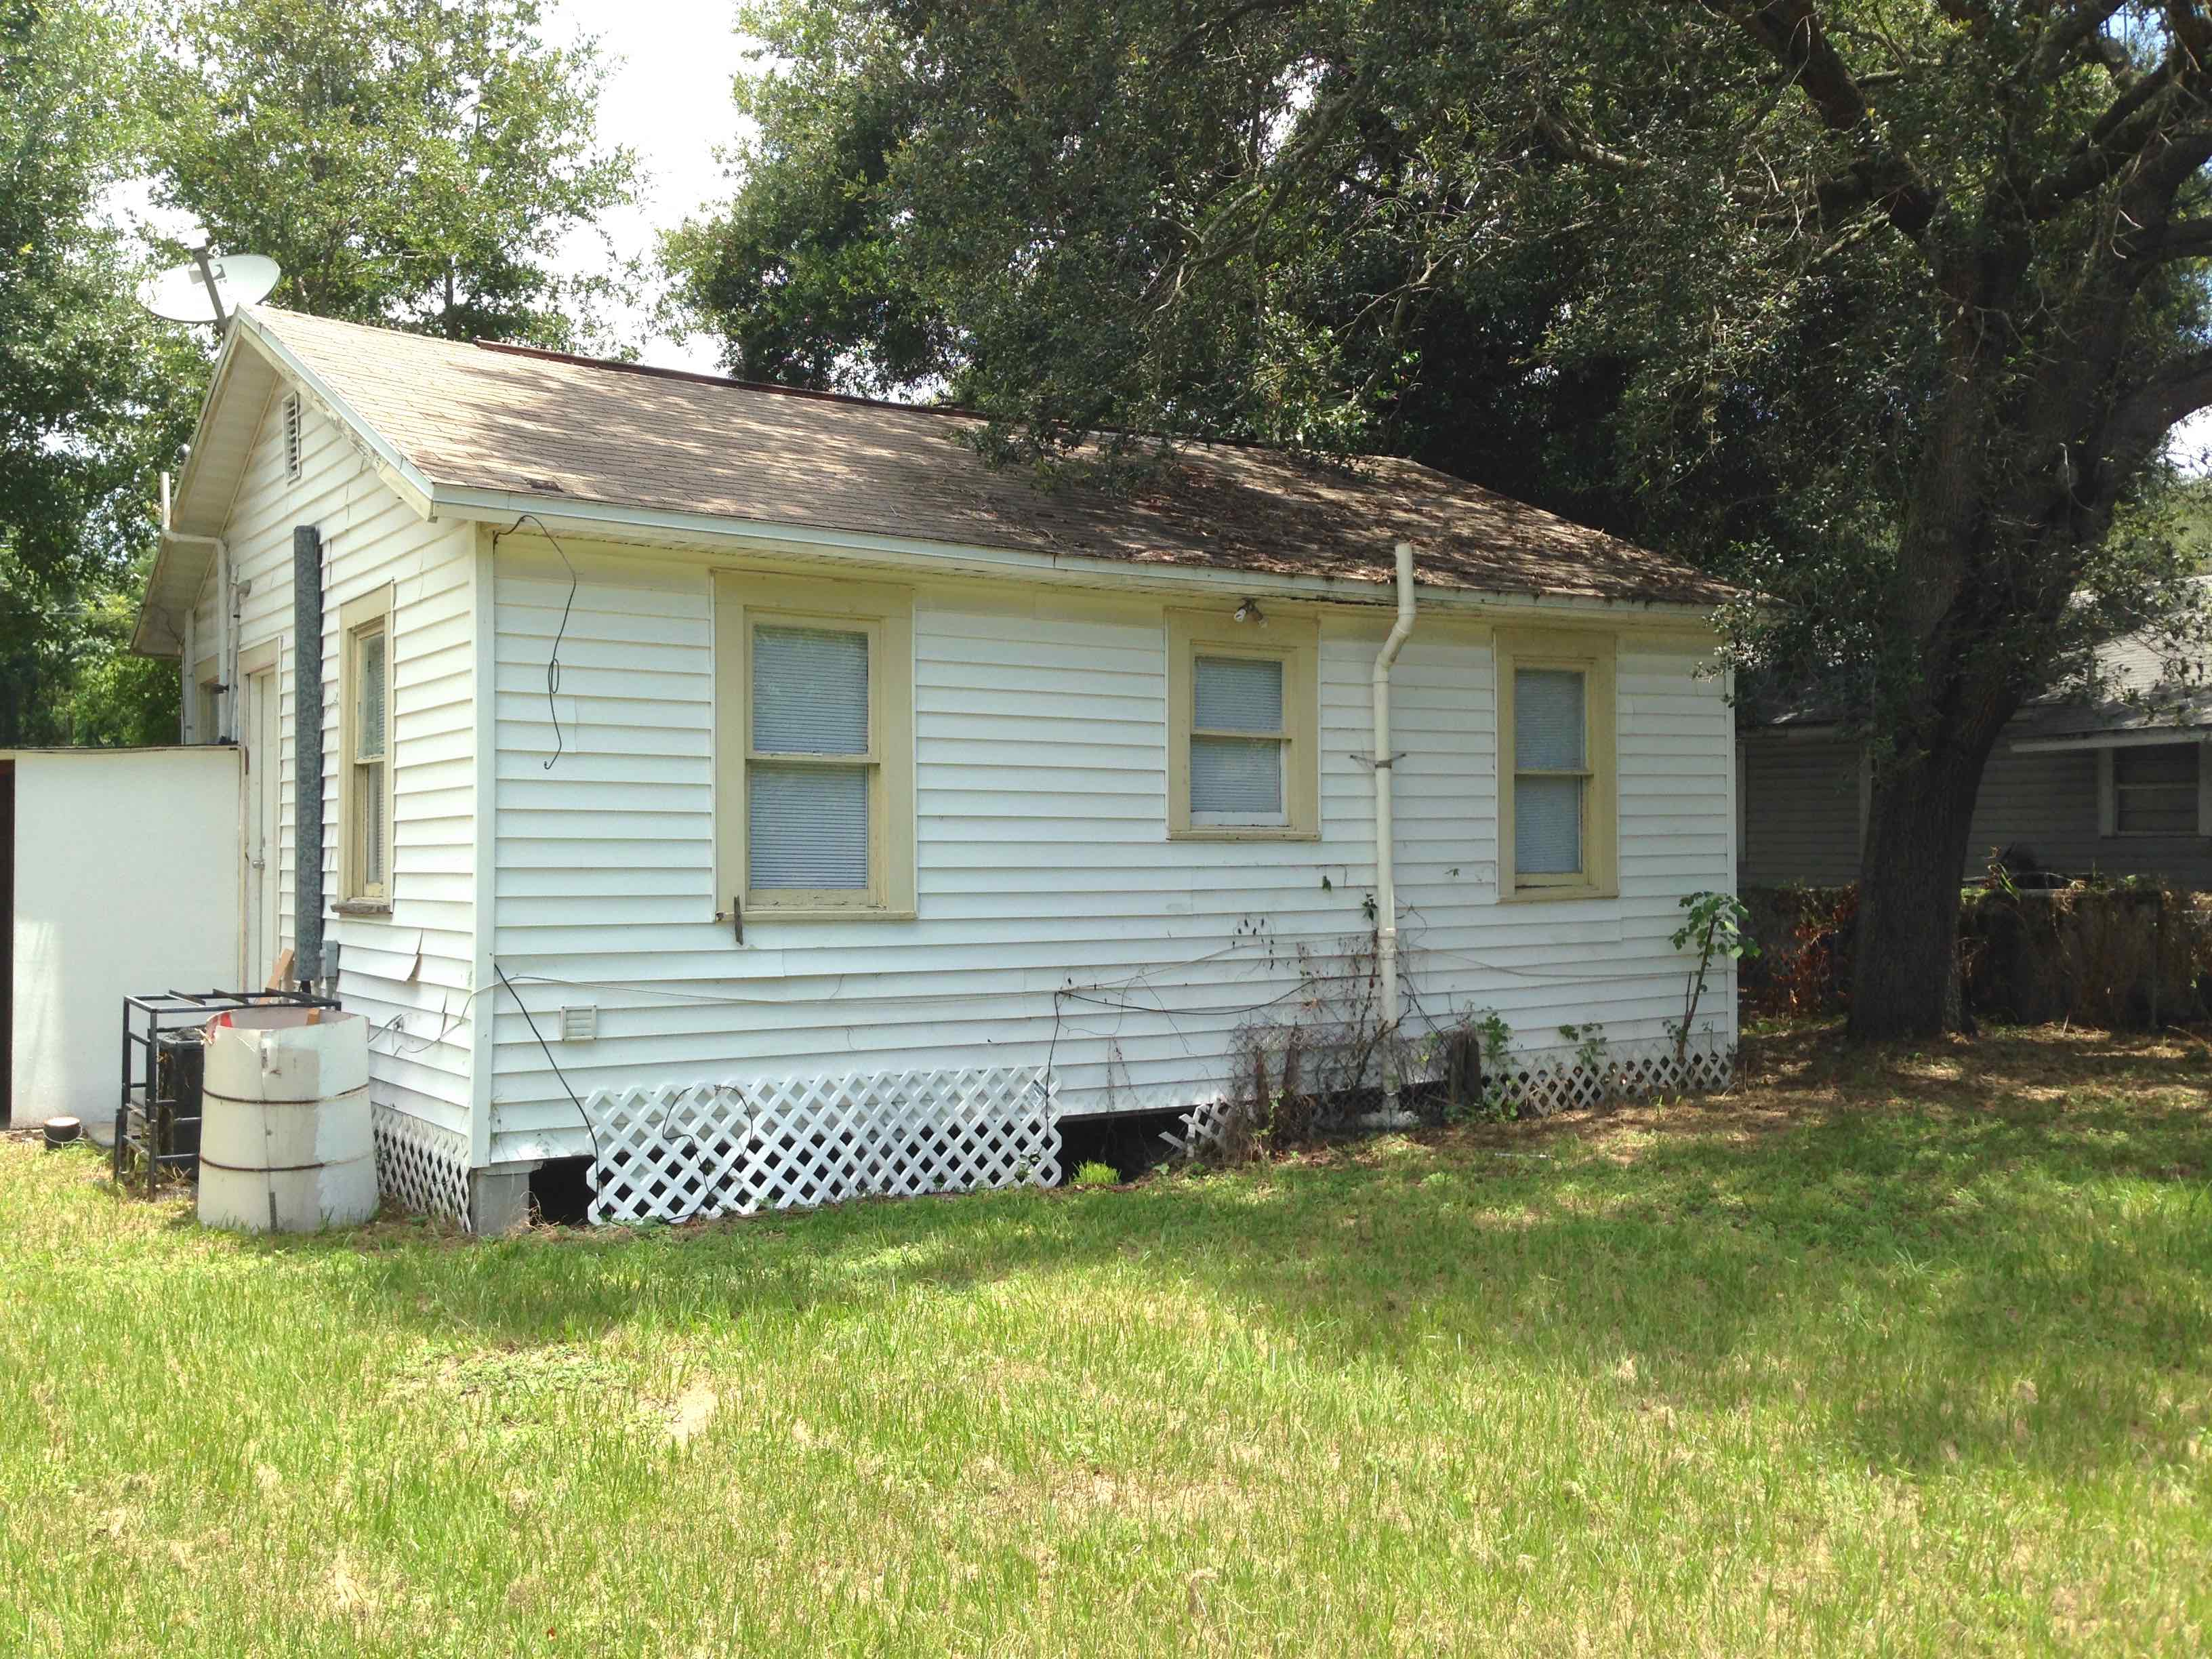 2 Bedrooms, Single Family, Rental For sale, Ellicott, 1 Bathrooms, Listing ID undefined, Tamp, Florida, United States, 33610,